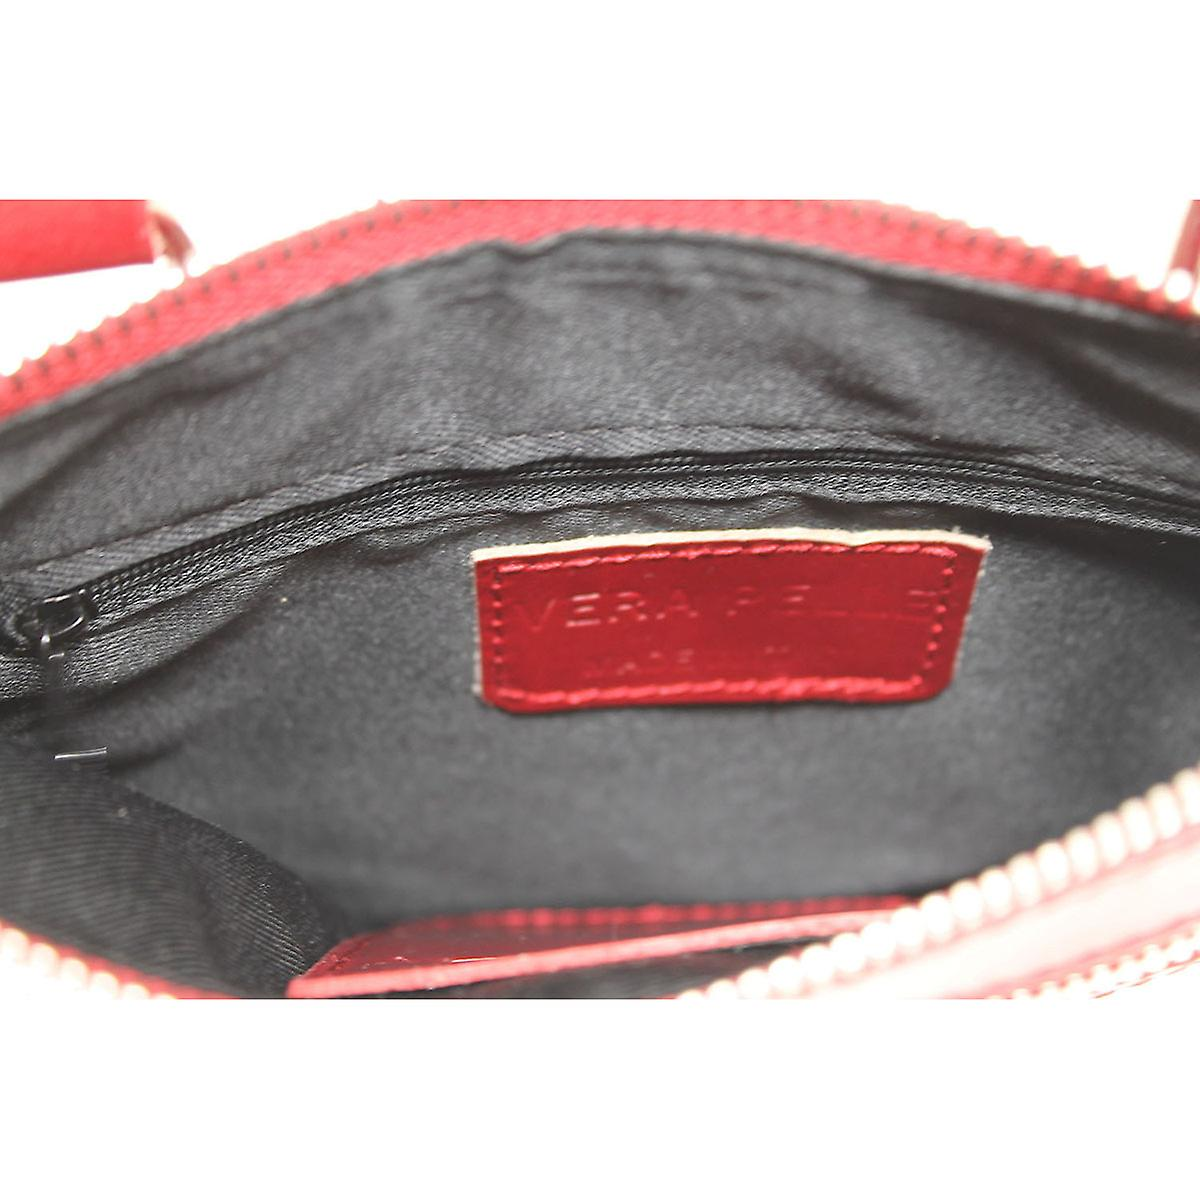 CTM small shoulder bag made of genuine leather made in italy